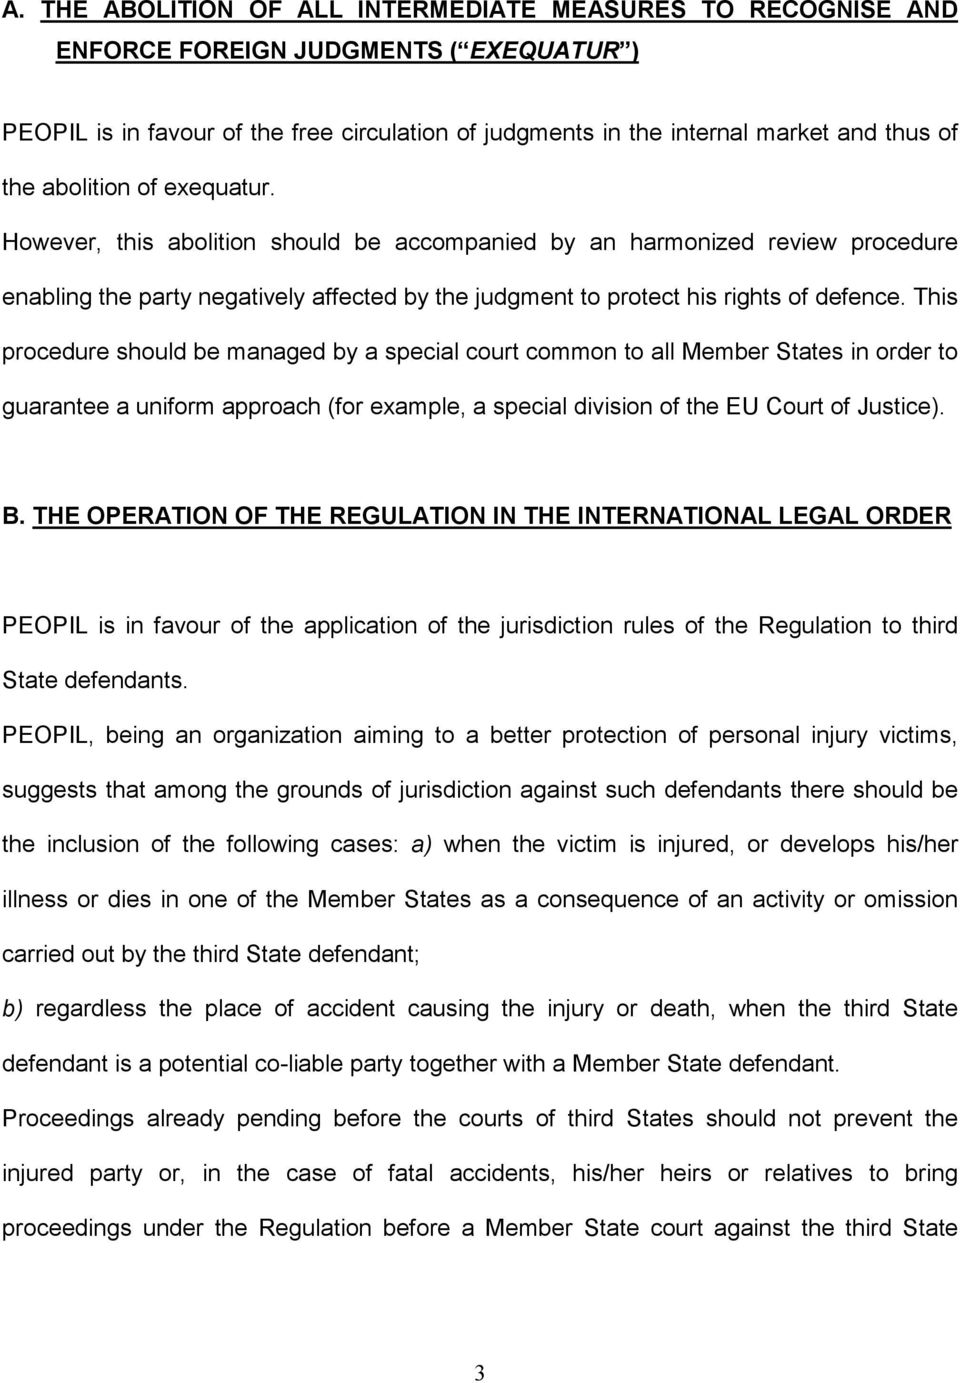 This procedure should be managed by a special court common to all Member States in order to guarantee a uniform approach (for example, a special division of the EU Court of Justice). B.